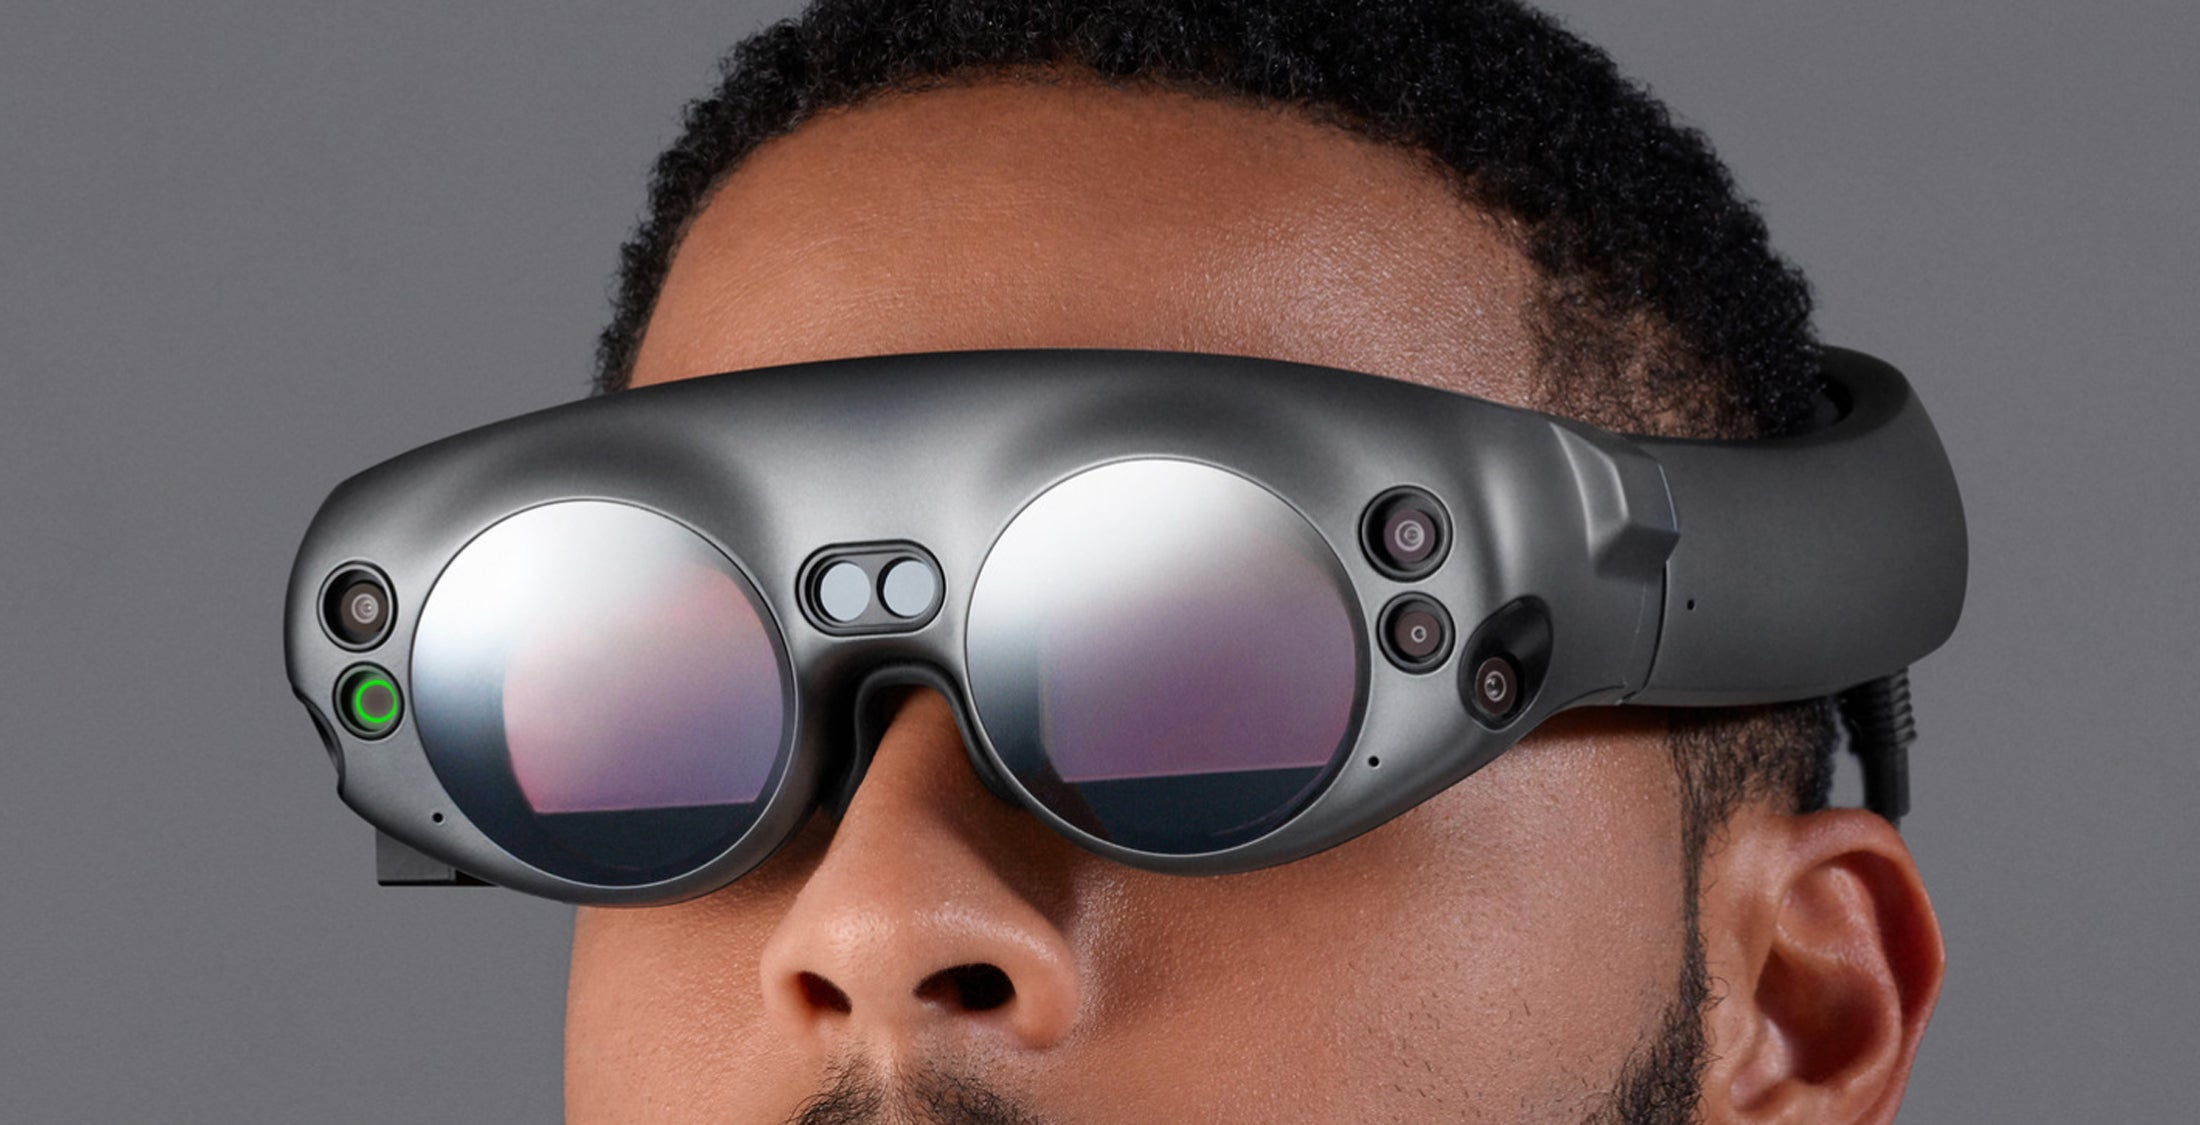 Oculus co-creator Palmer Luckey is not a fan of the Magic Leap